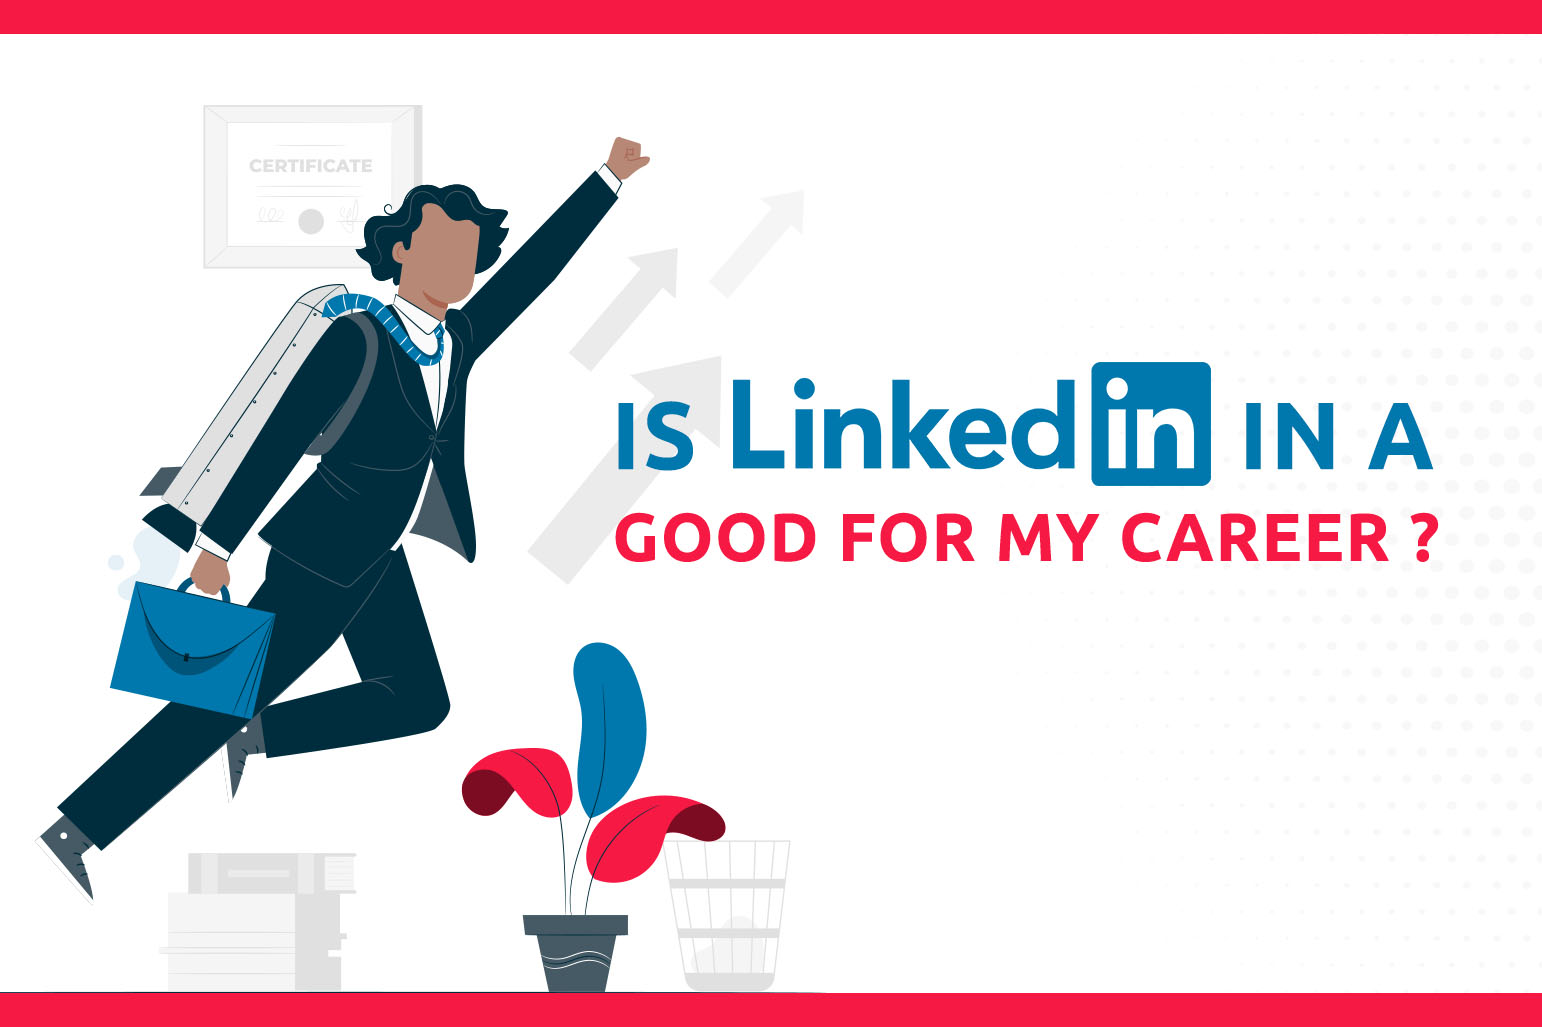 Is LinkedIn Good For My Career?